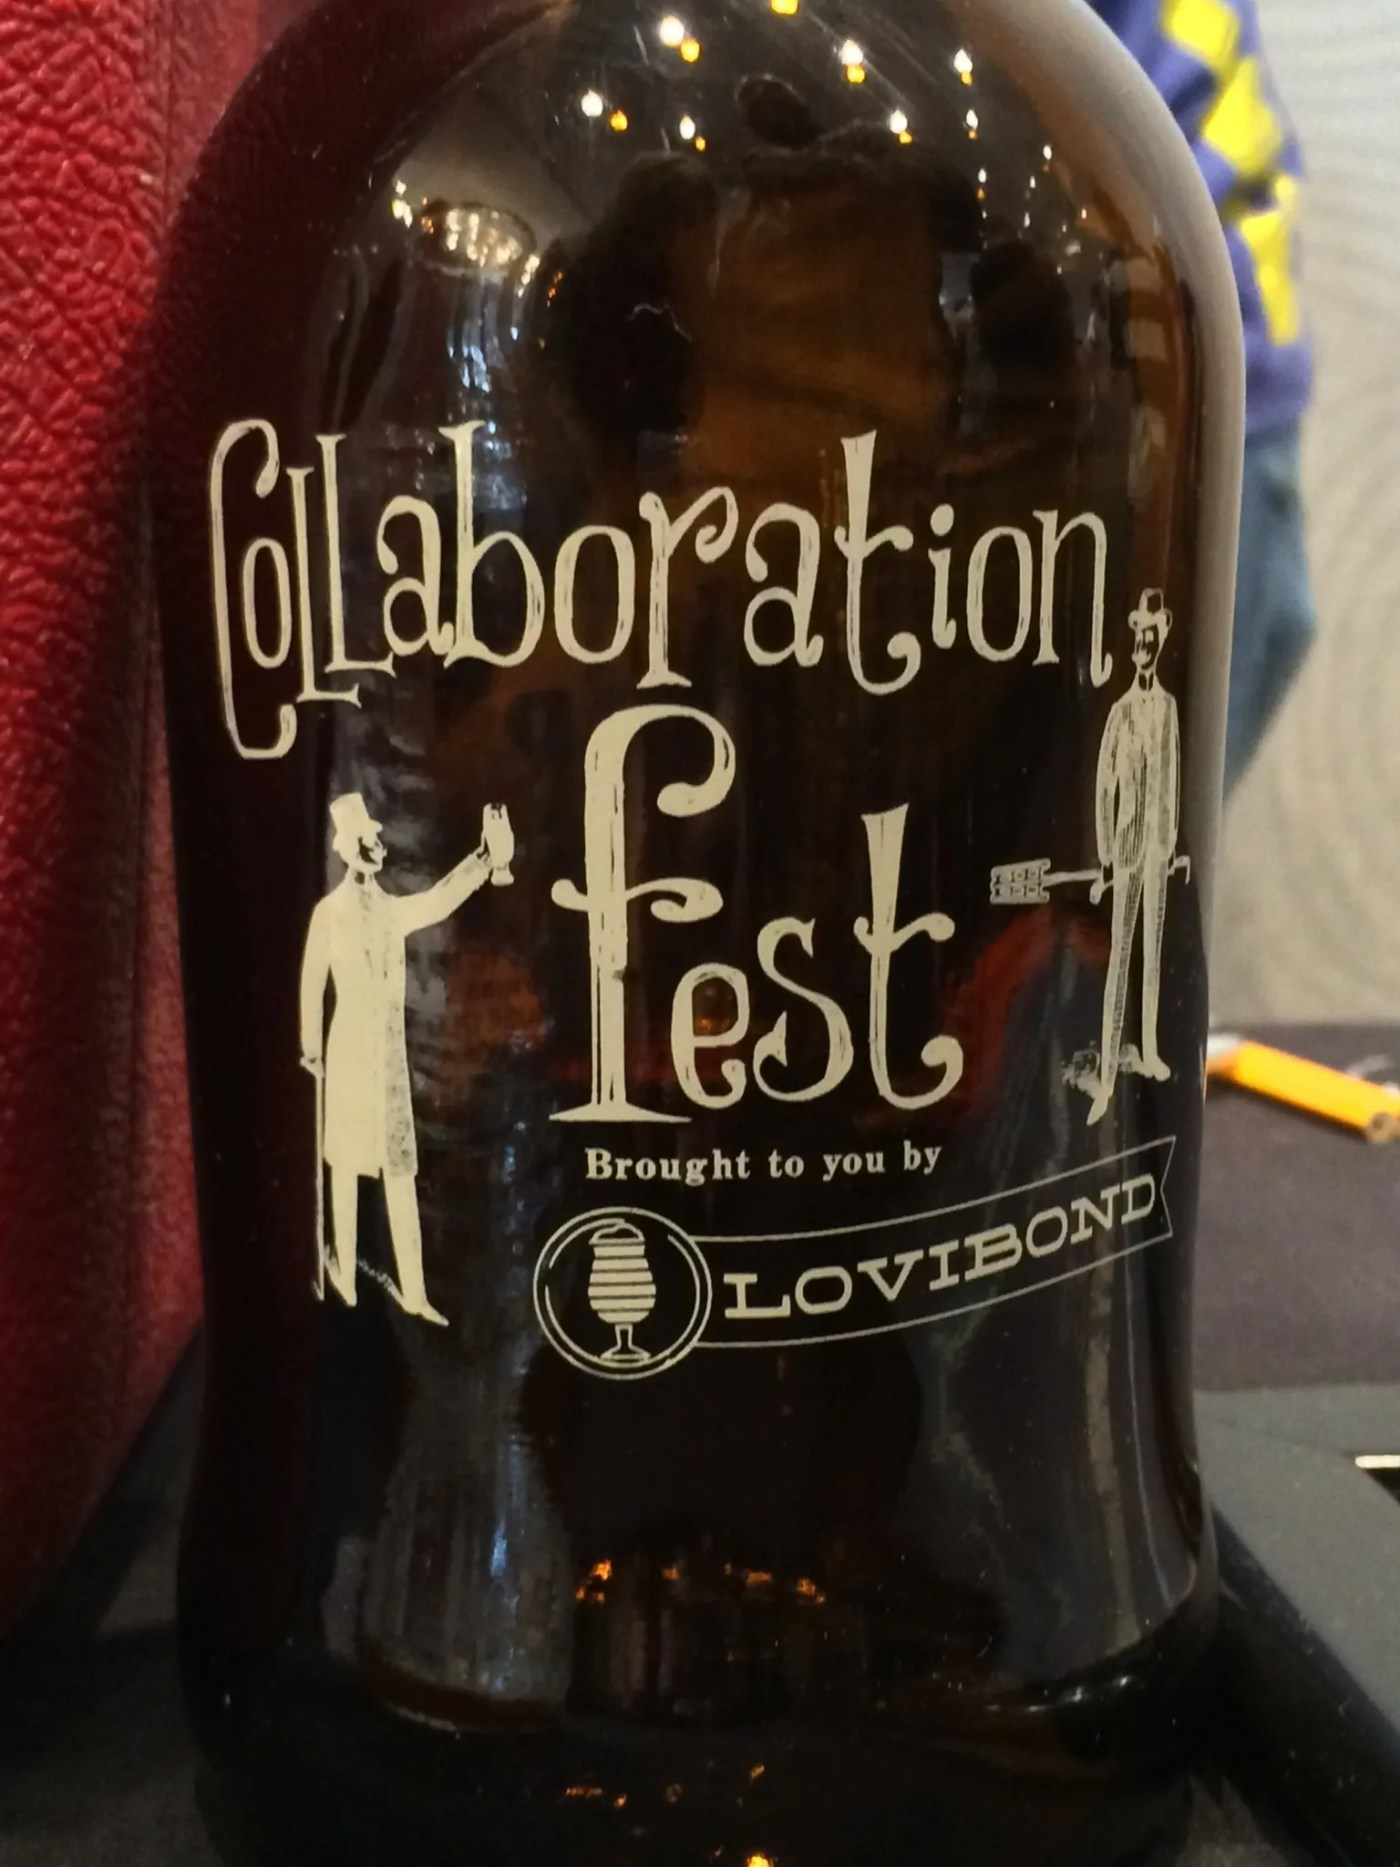 2015 Collaboration Fest is coming to Denver 3/21/2015 | Bottlemakesthree.com